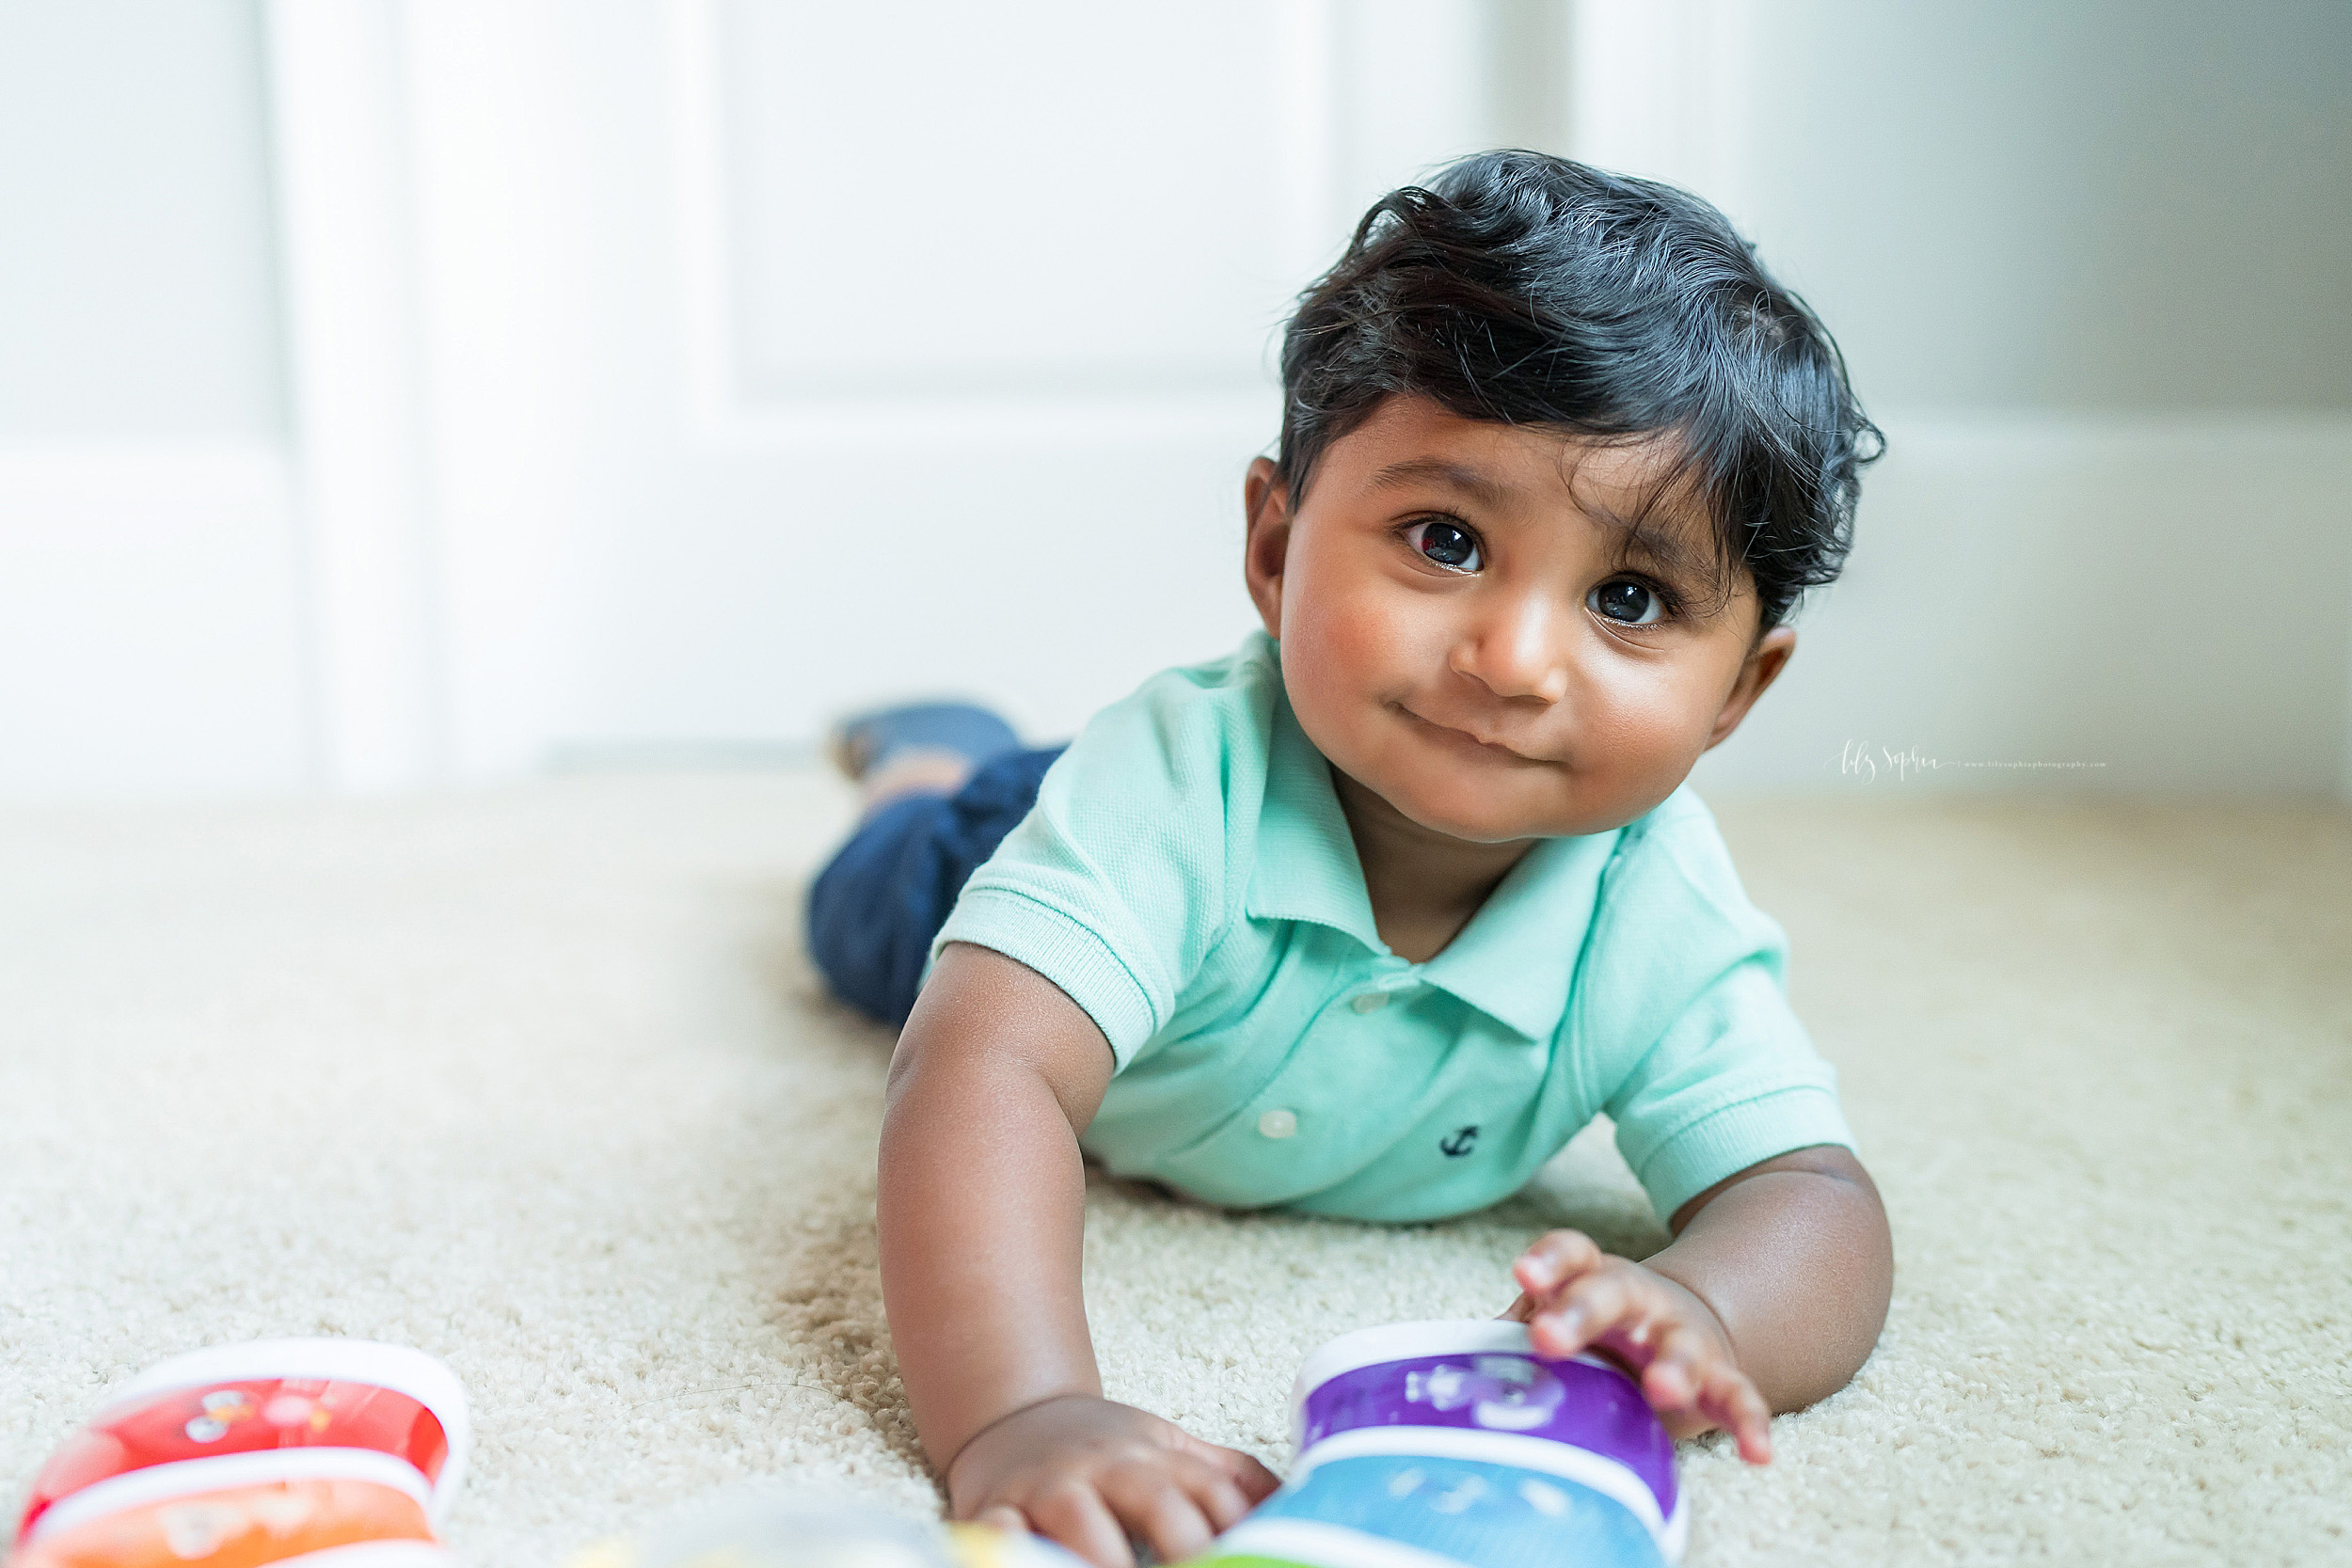 atlanta-brookhaven-east-cobb-marietta-candler-park-sandy-springs-buckhead-virginia-highlands-west-end-decatur-lily-sophia-photography-in-home-lifestyle-session-eight-month-milestone-indian-family_1669.jpg